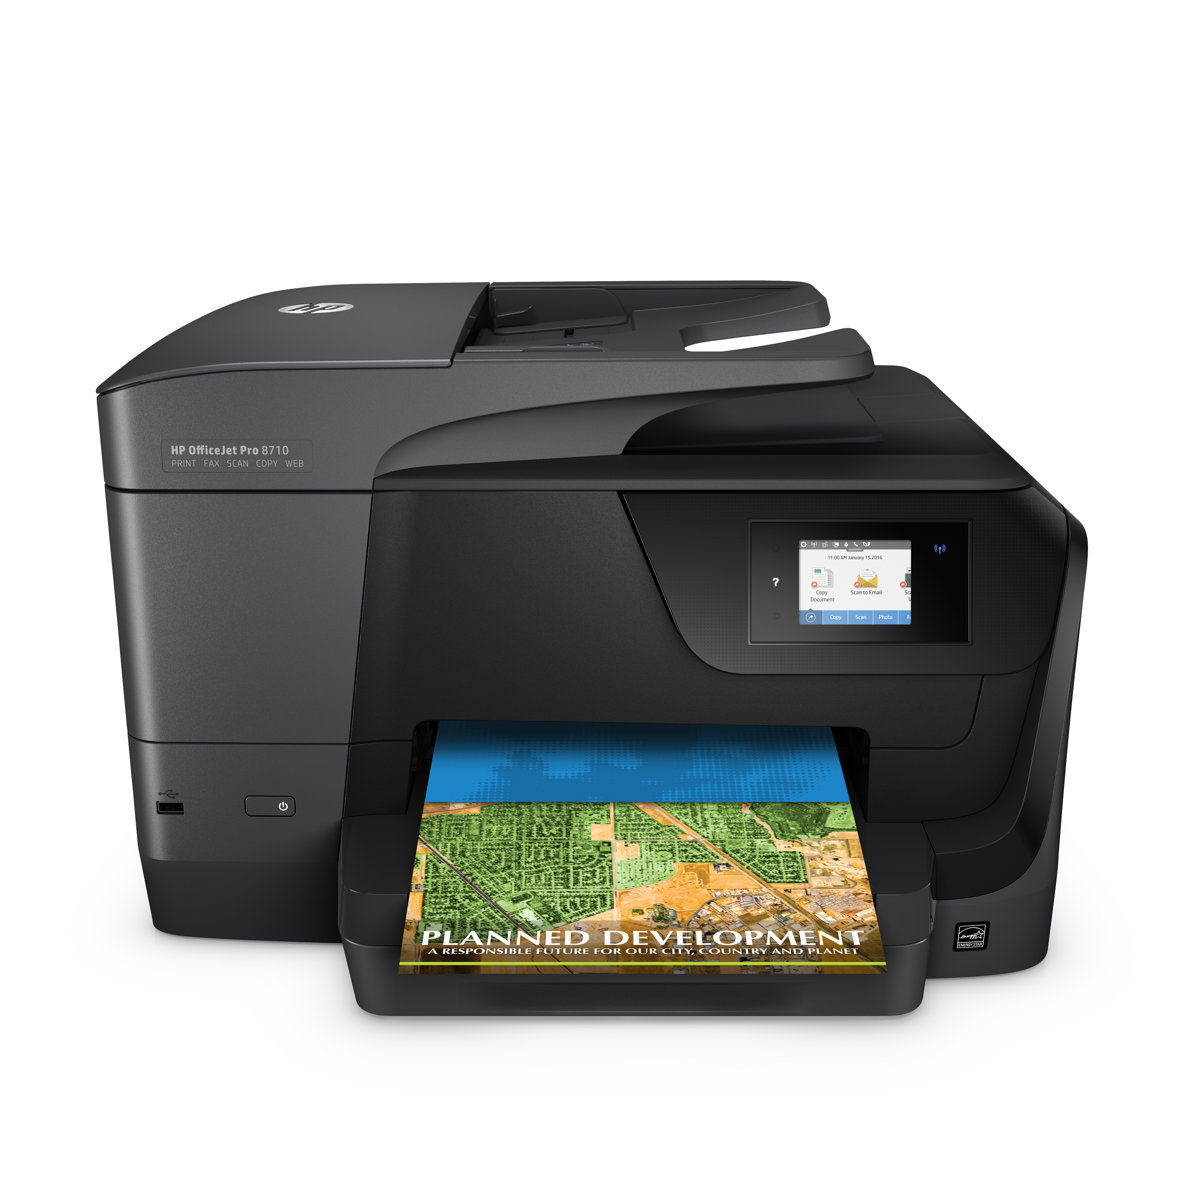 Color printing office depot - Hp Officejet Pro 8710 All In